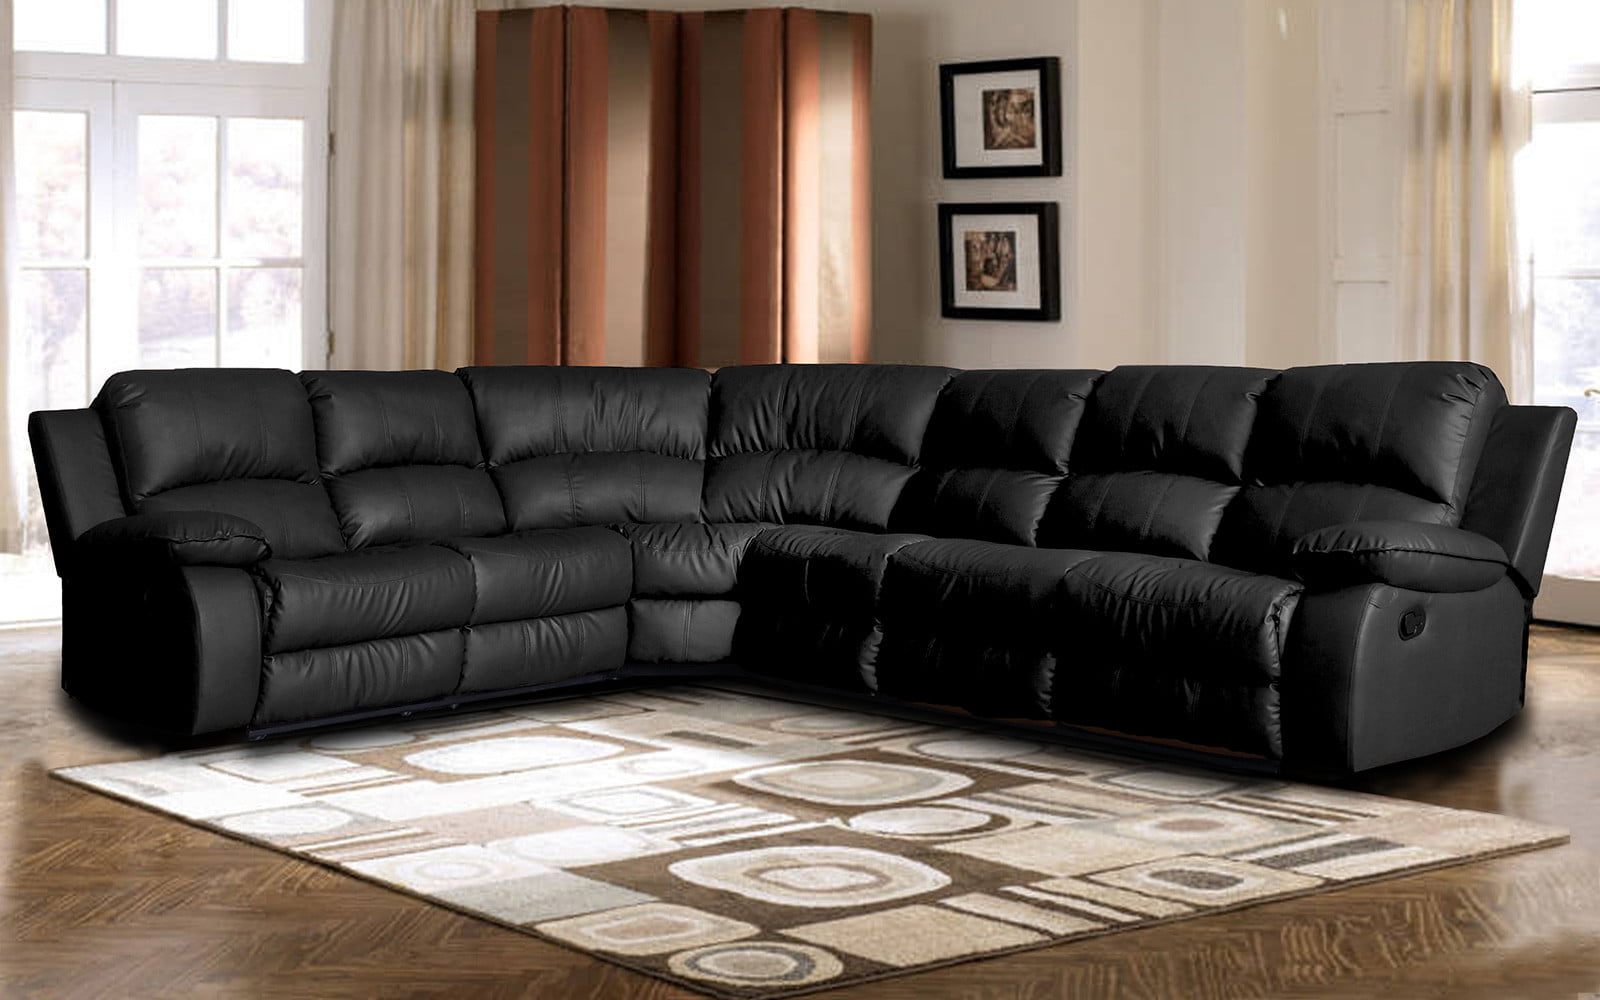 Classic Oversize and Overstuffed Corner Bonded Leather Sectional with 2 Reclining Seats by